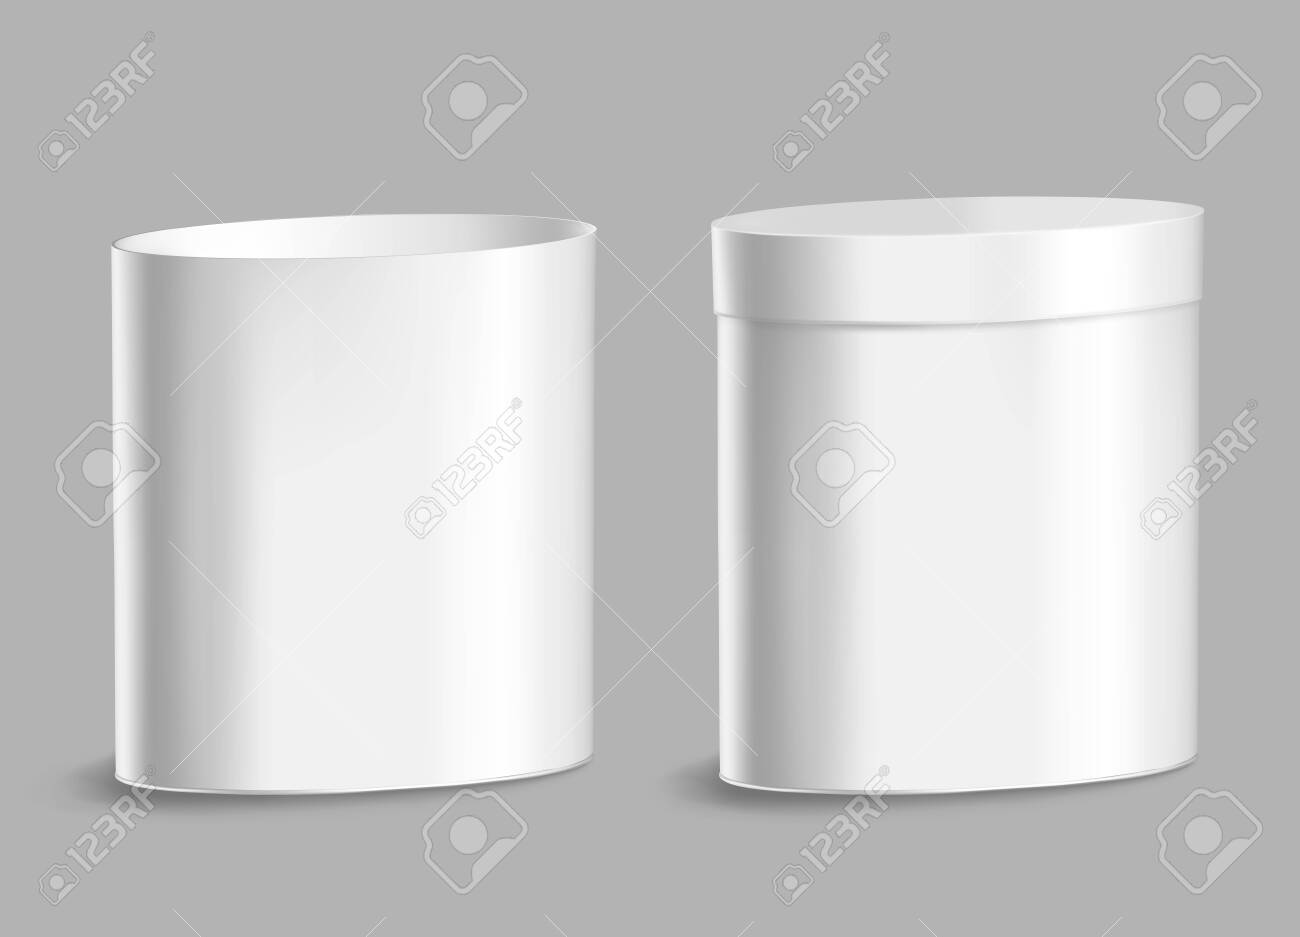 Oval metal can for food, cookies and gifts. - 145205550